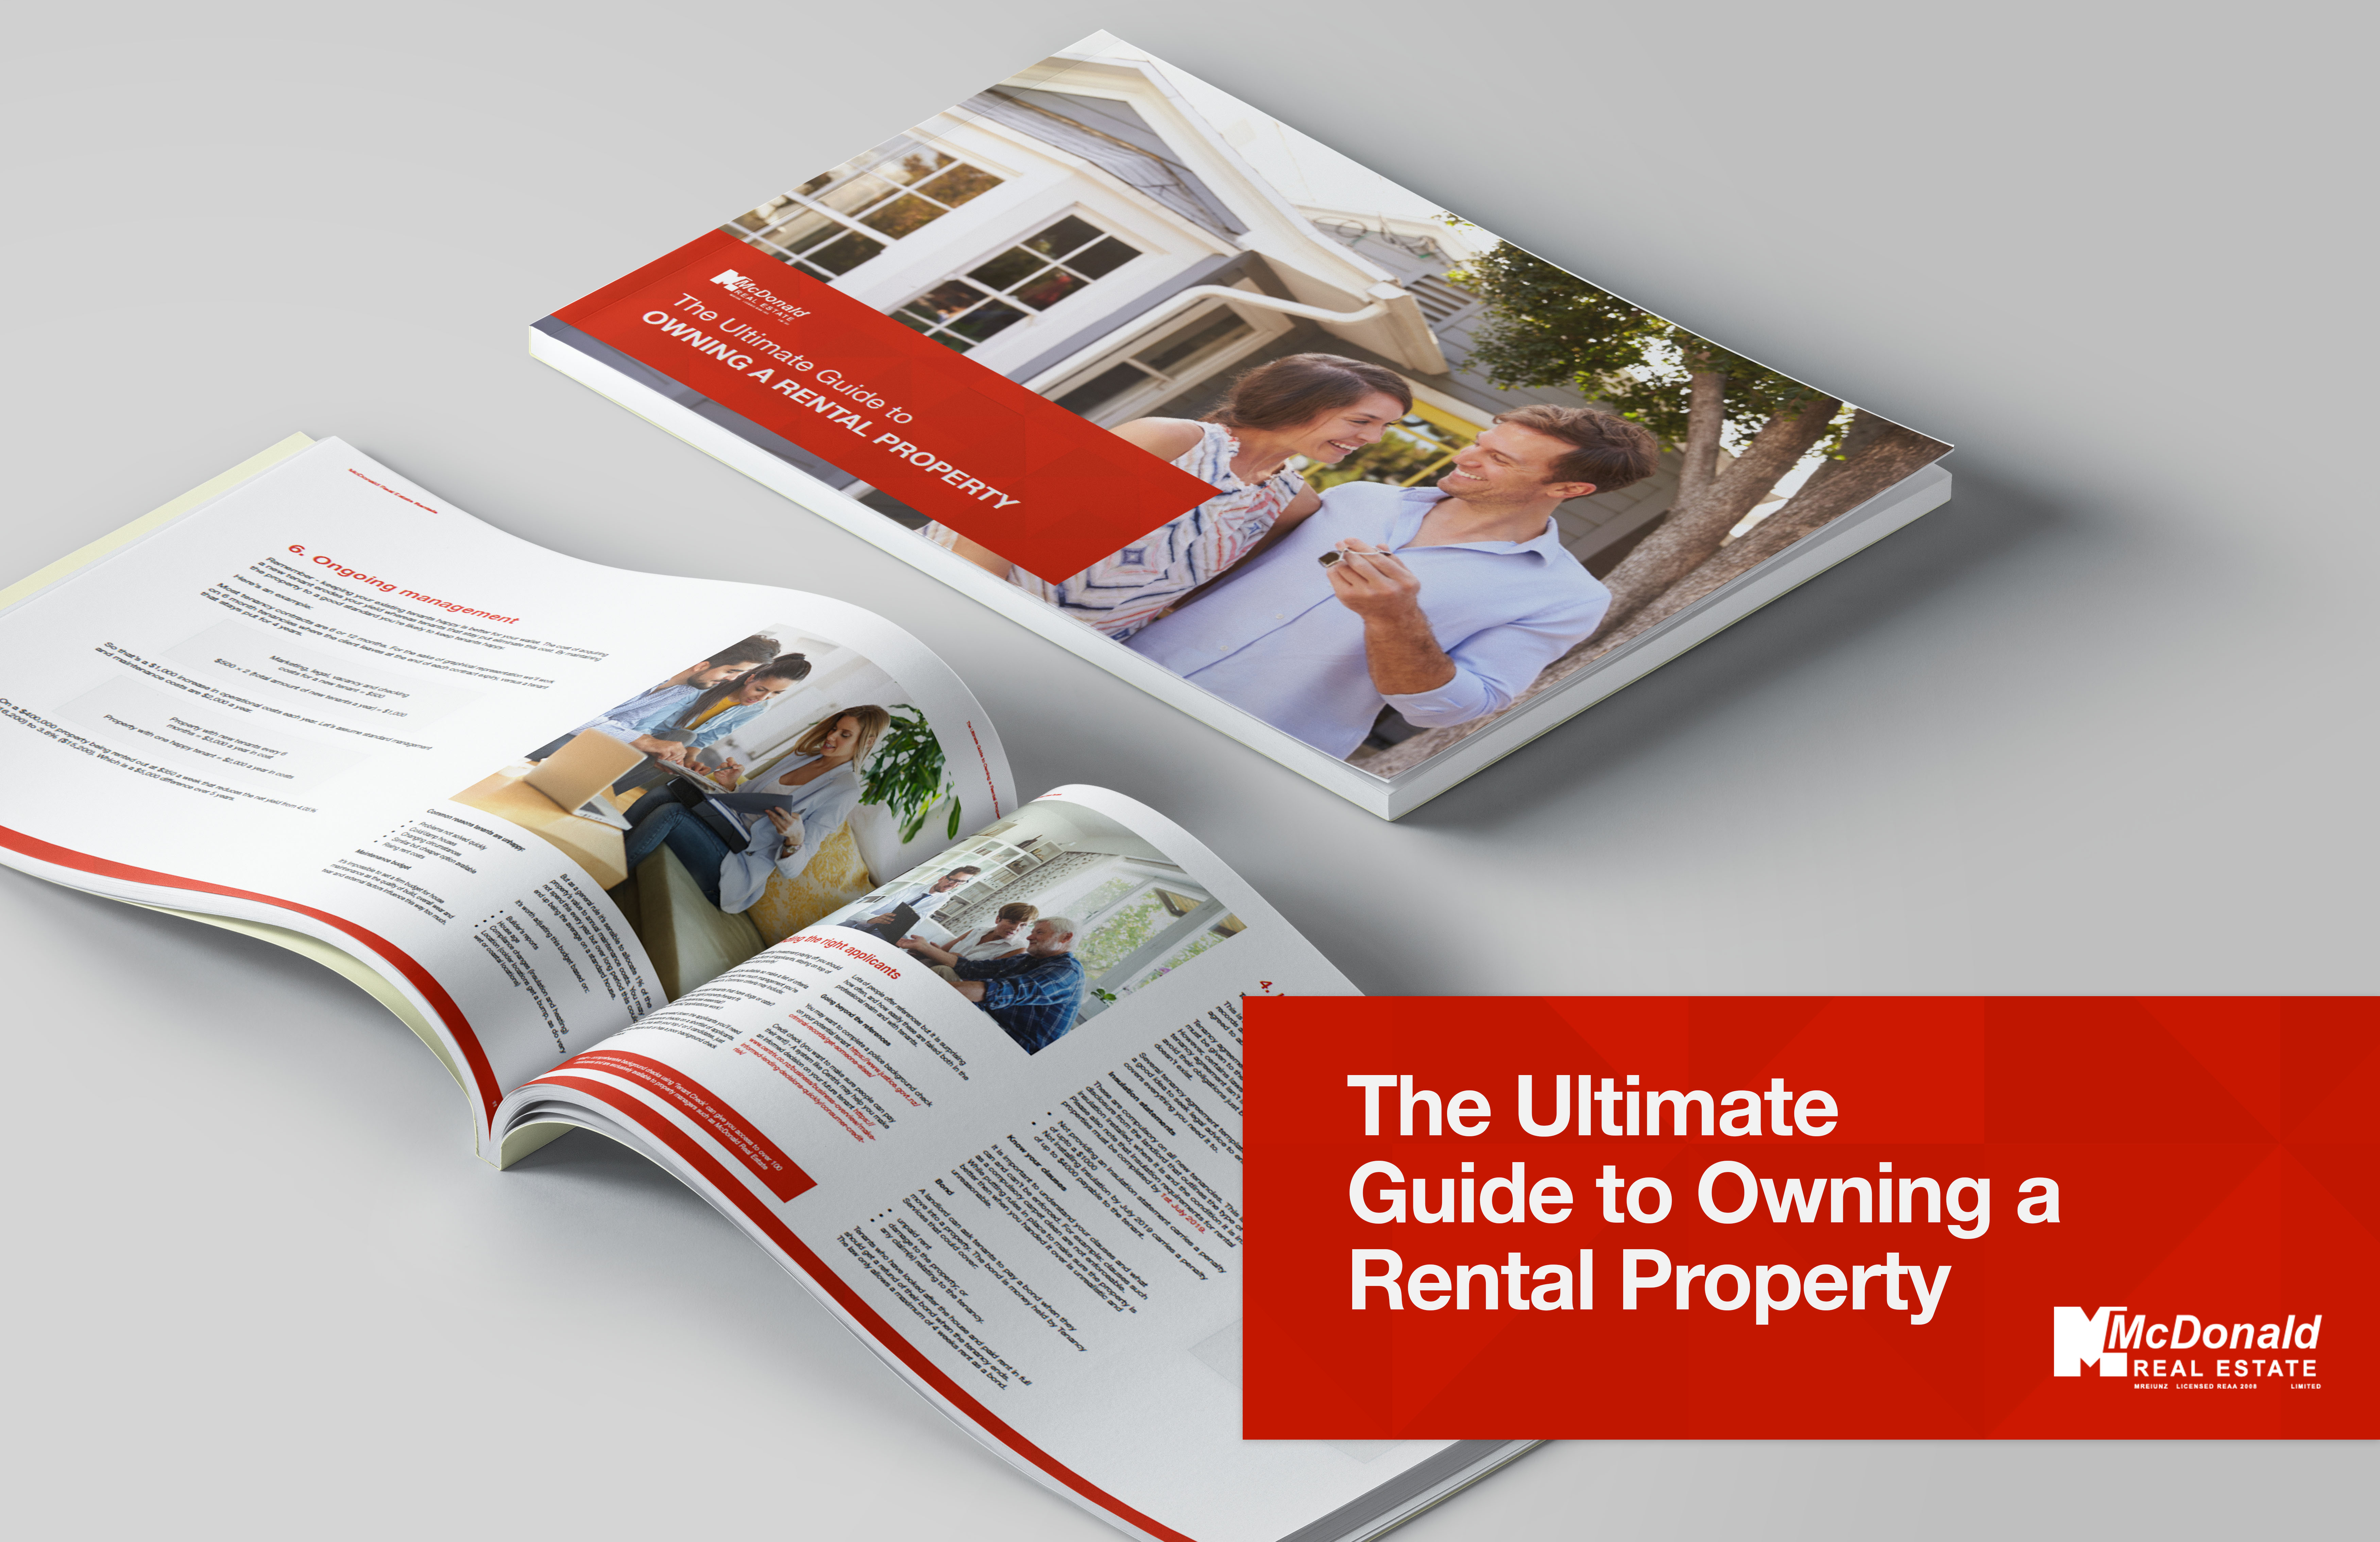 Download our free guide to property management in Taranaki to understand your property investment options